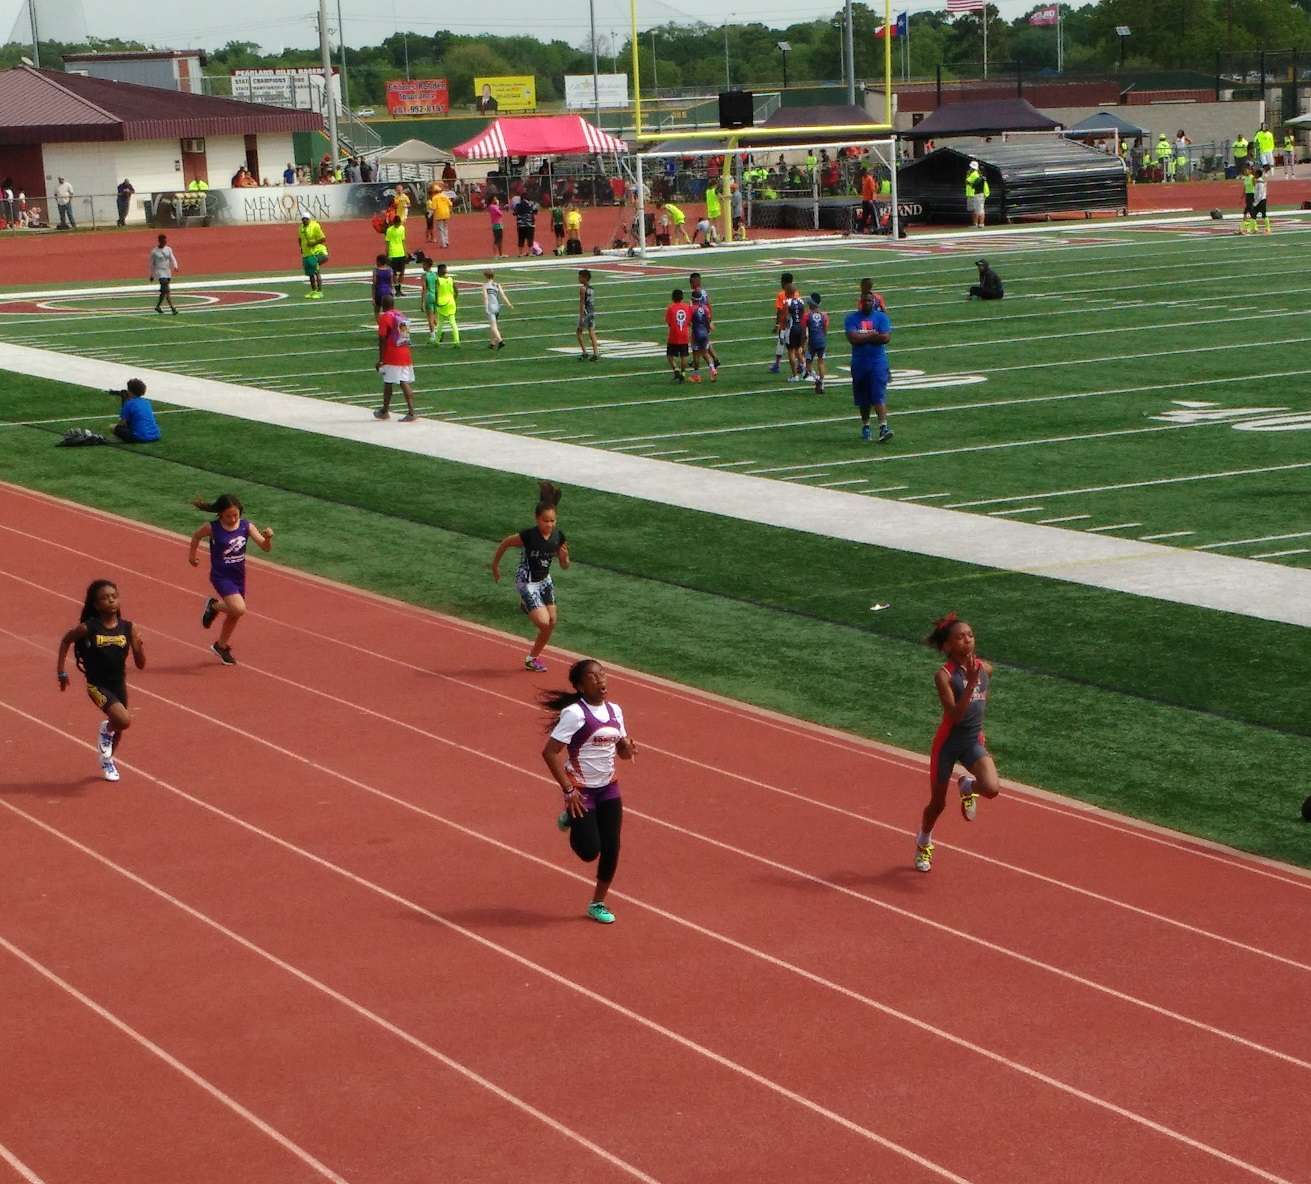 Regan running the 100